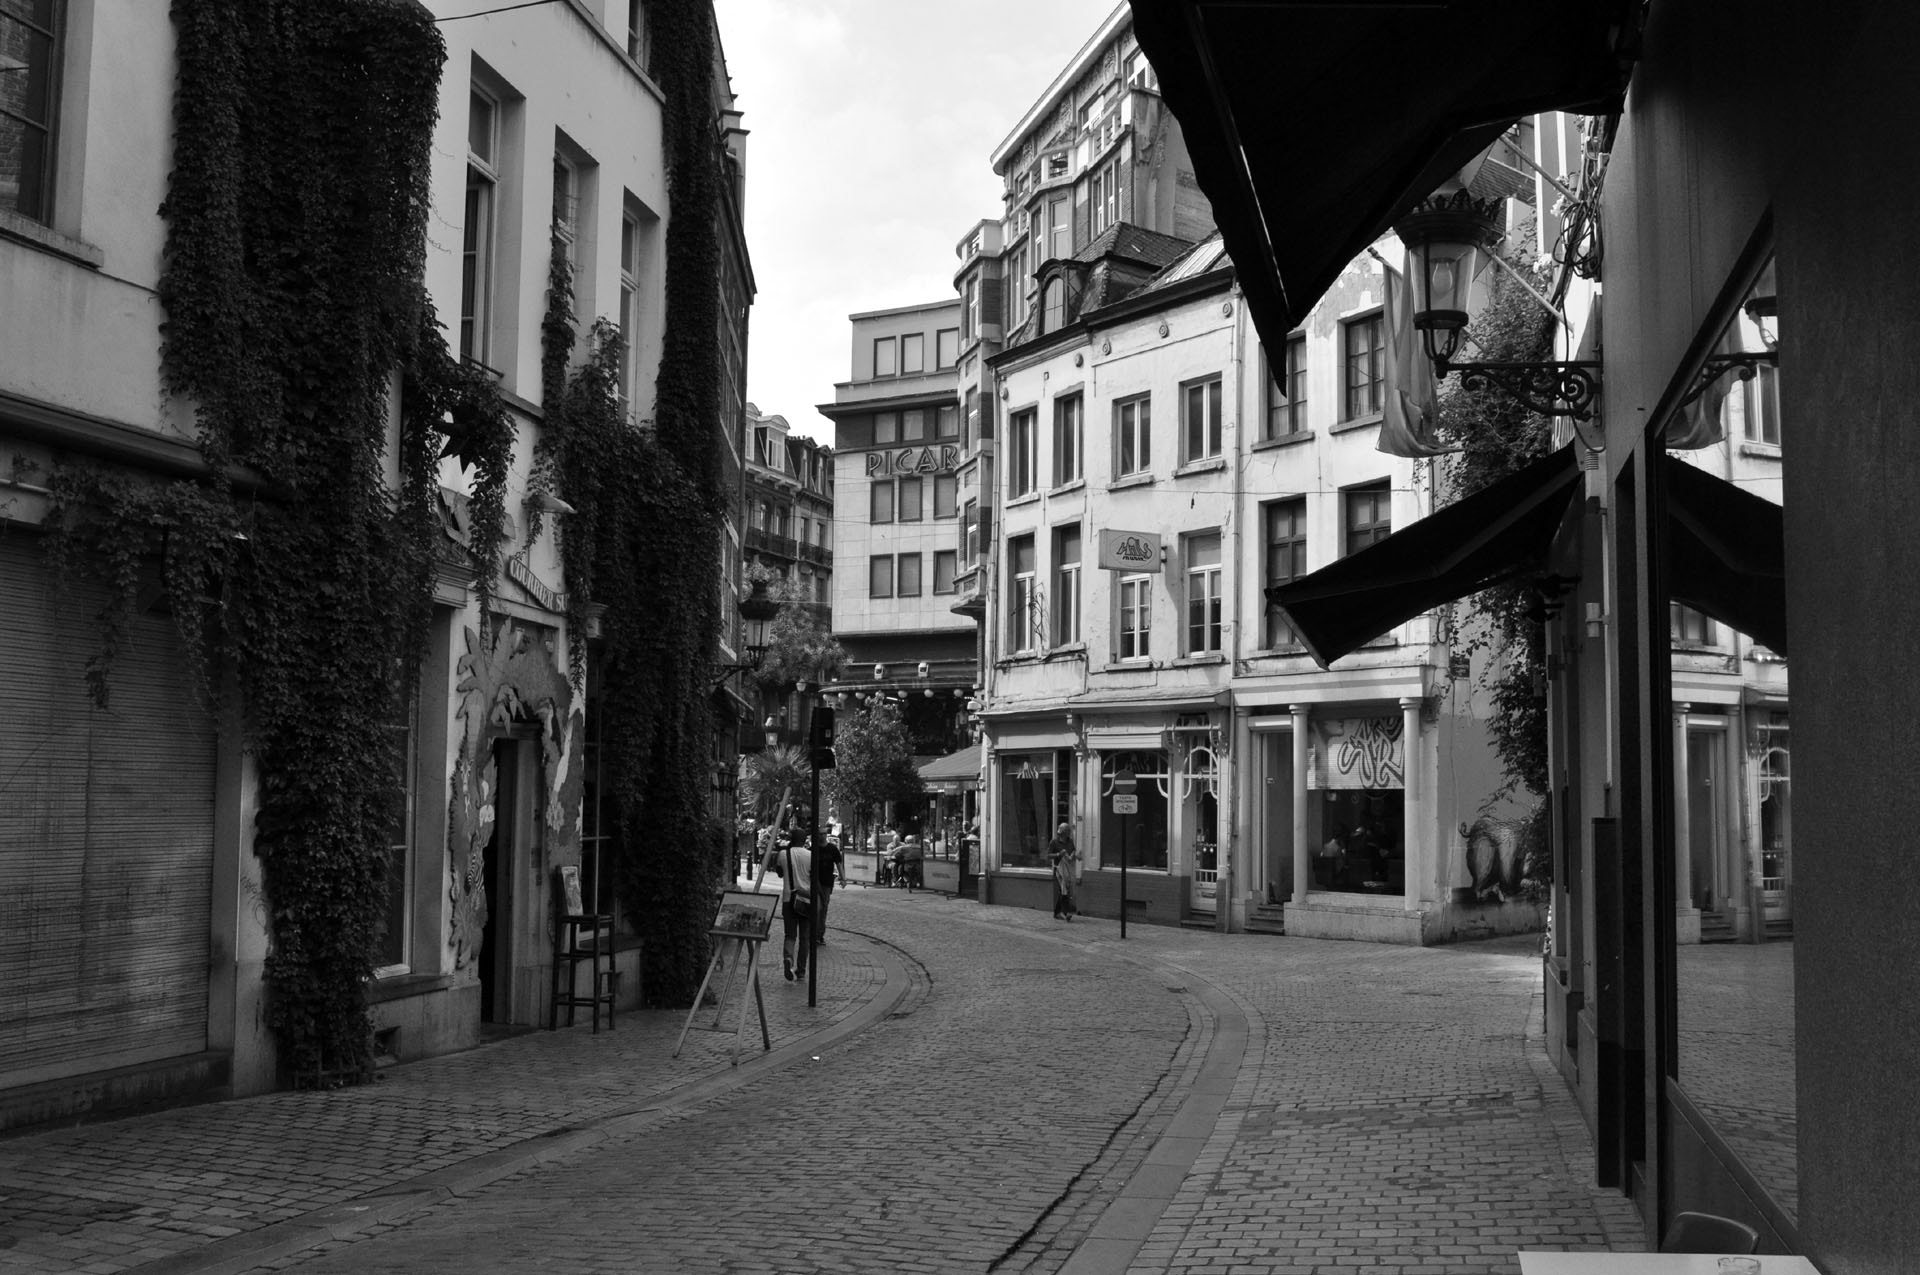 Photograph a deserted street by Joakim Chappel on 500px